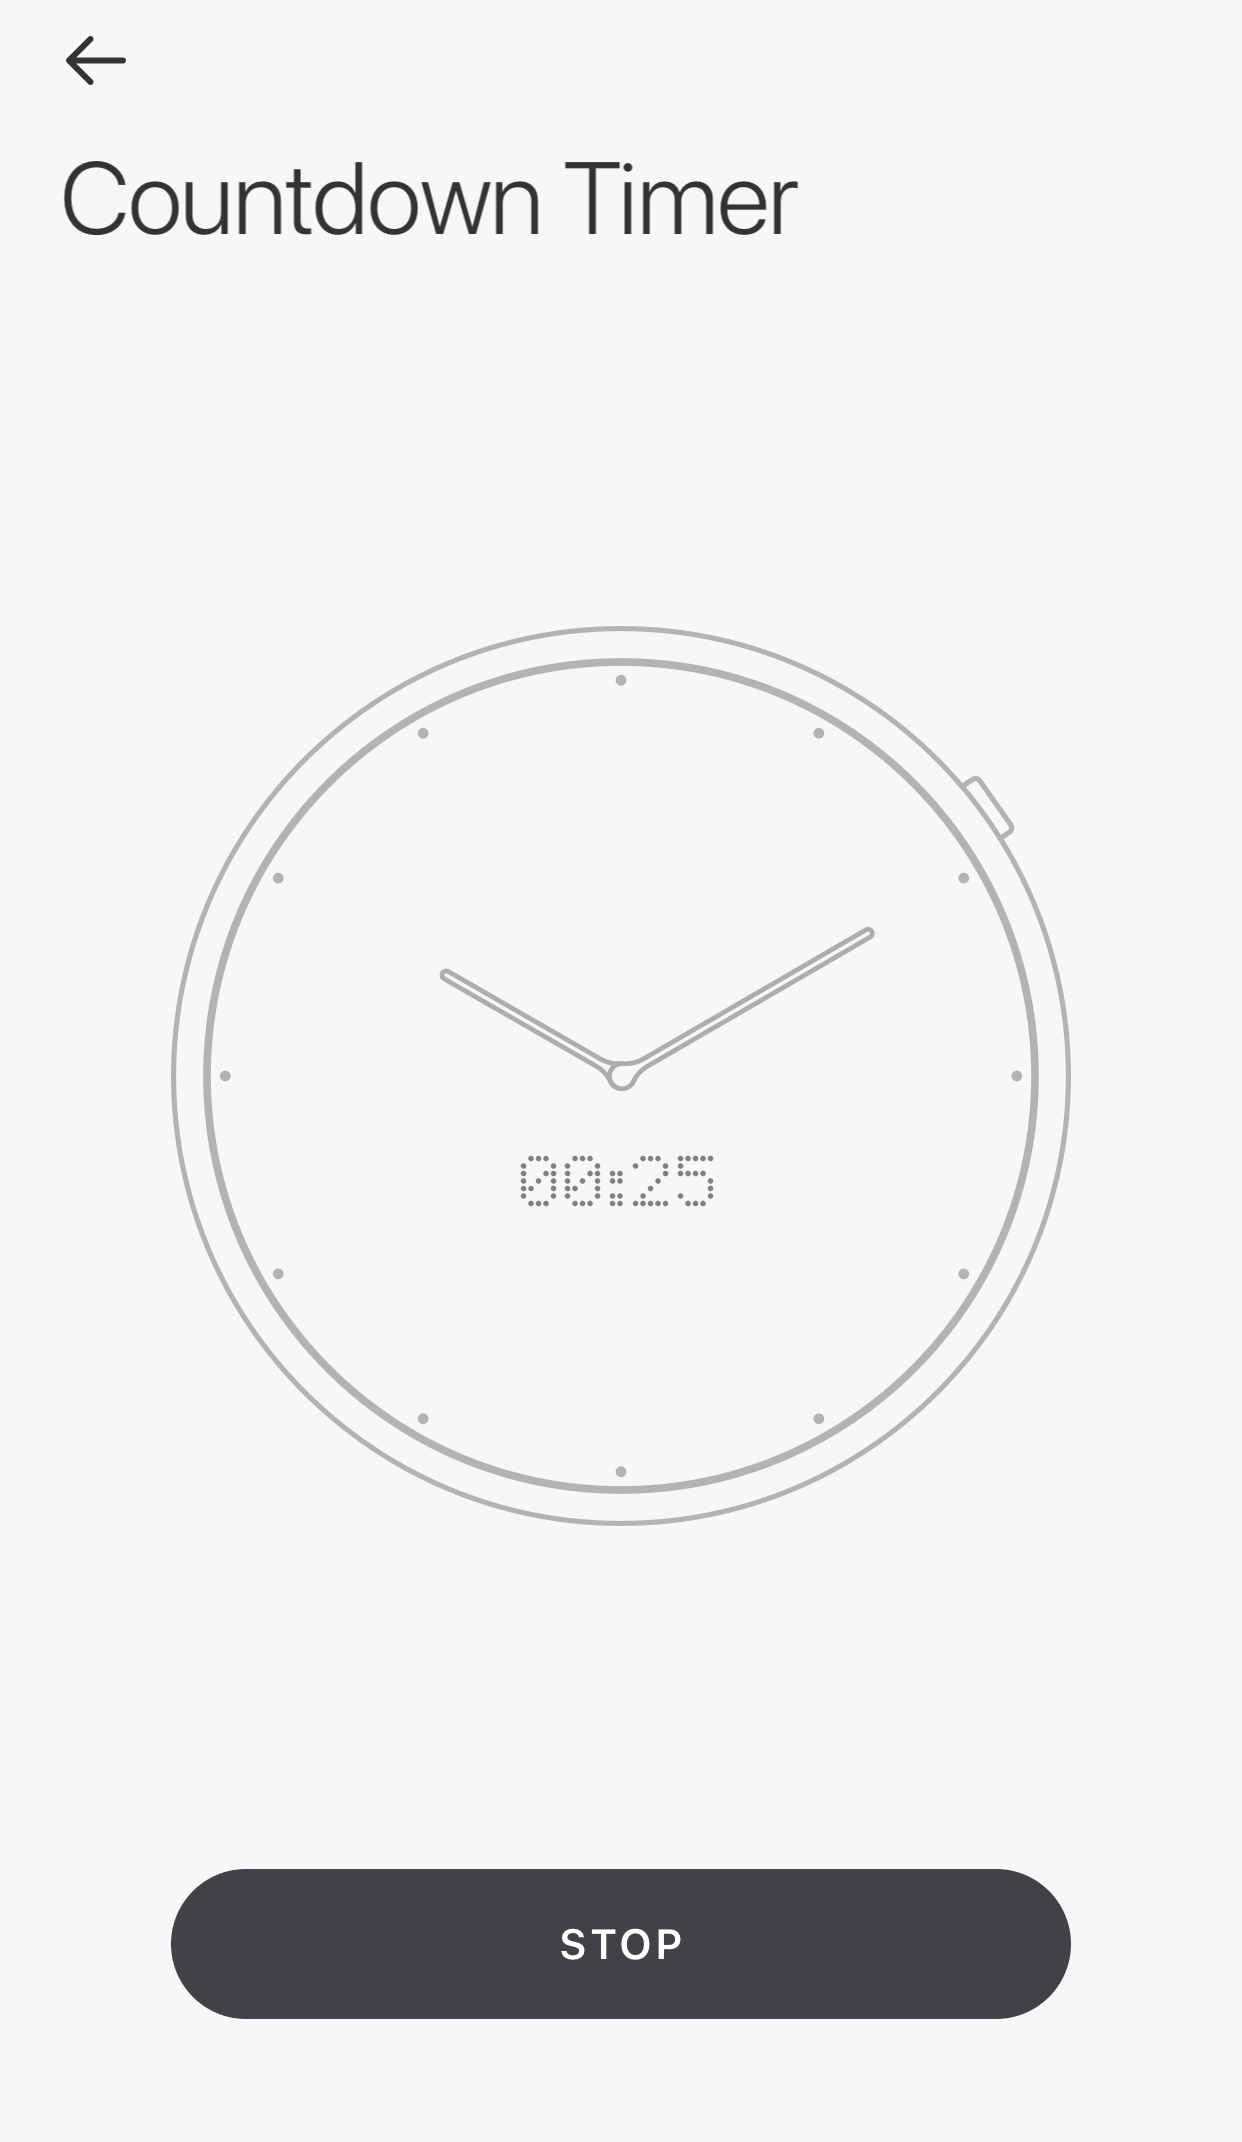 Glance App - Countdown Timer - Countdown